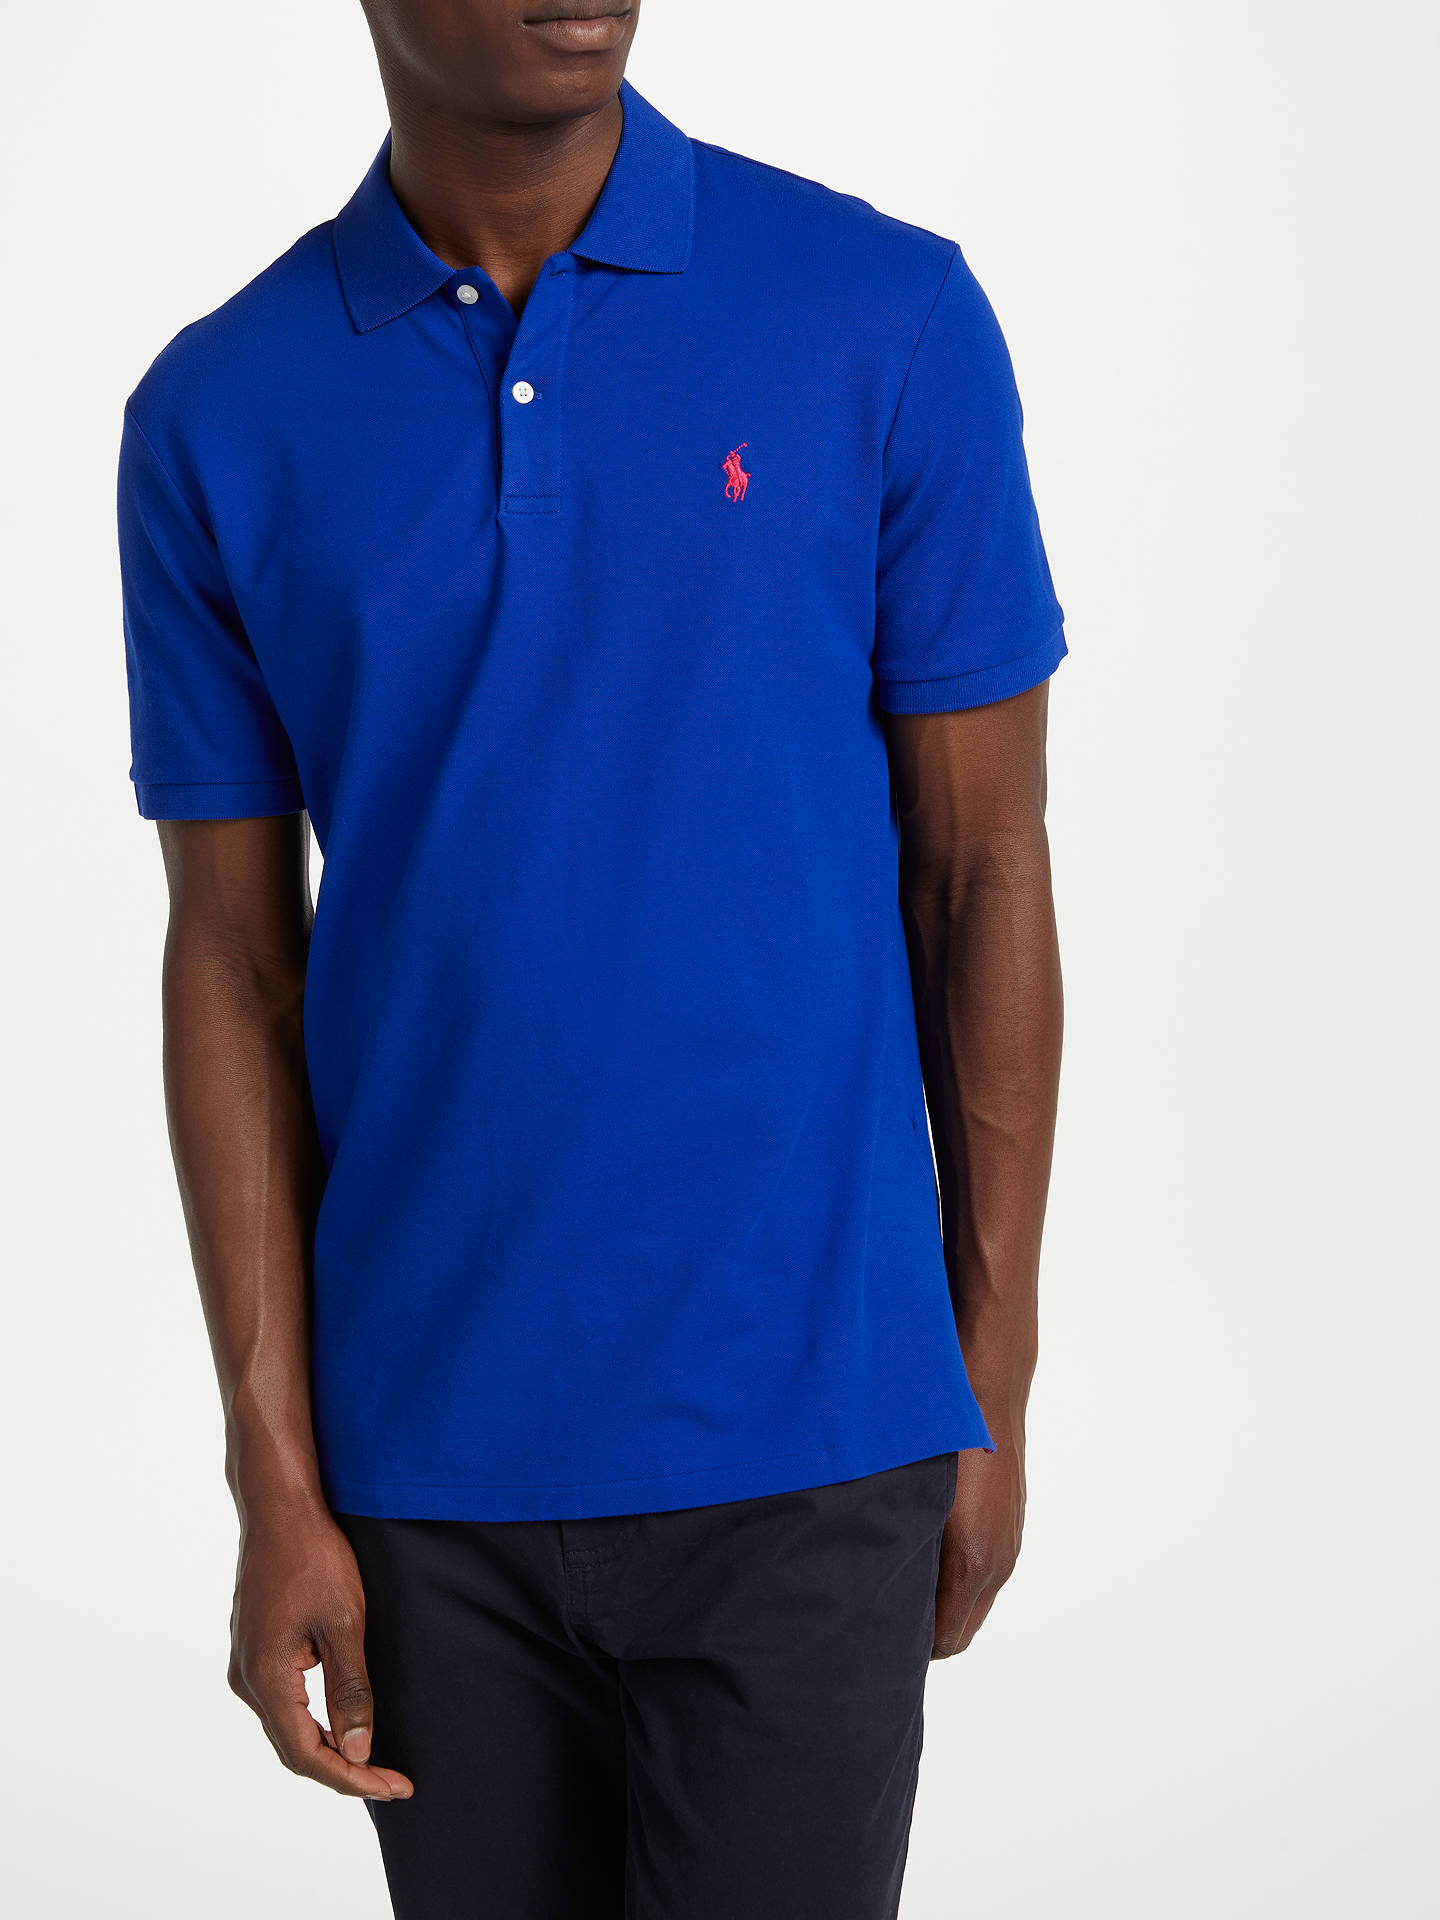 23ac163b5359d2 Buy Polo Golf by Ralph Lauren Stretch Polo Shirt, Heritage Royal, S Online  at ...